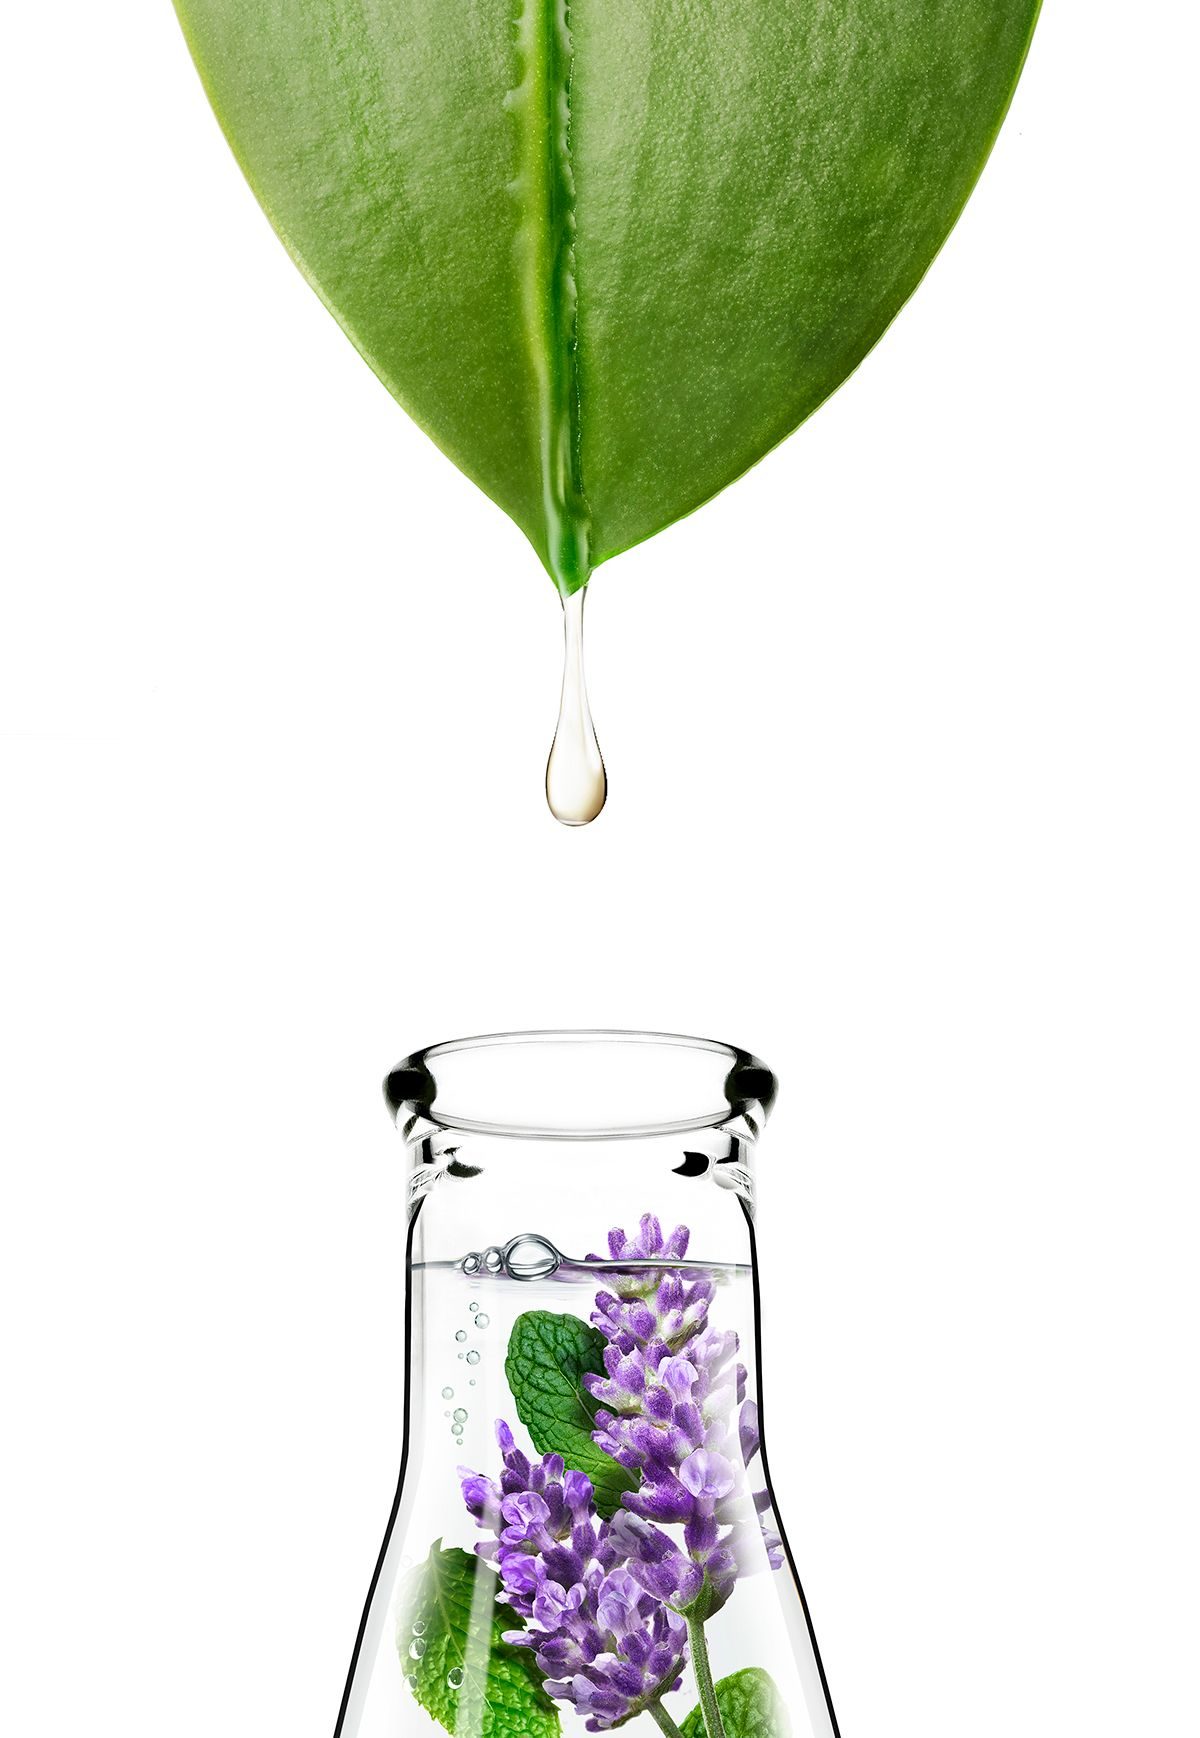 0585_Apothecare_Lavender_LongDrip_03_LOW.jpg